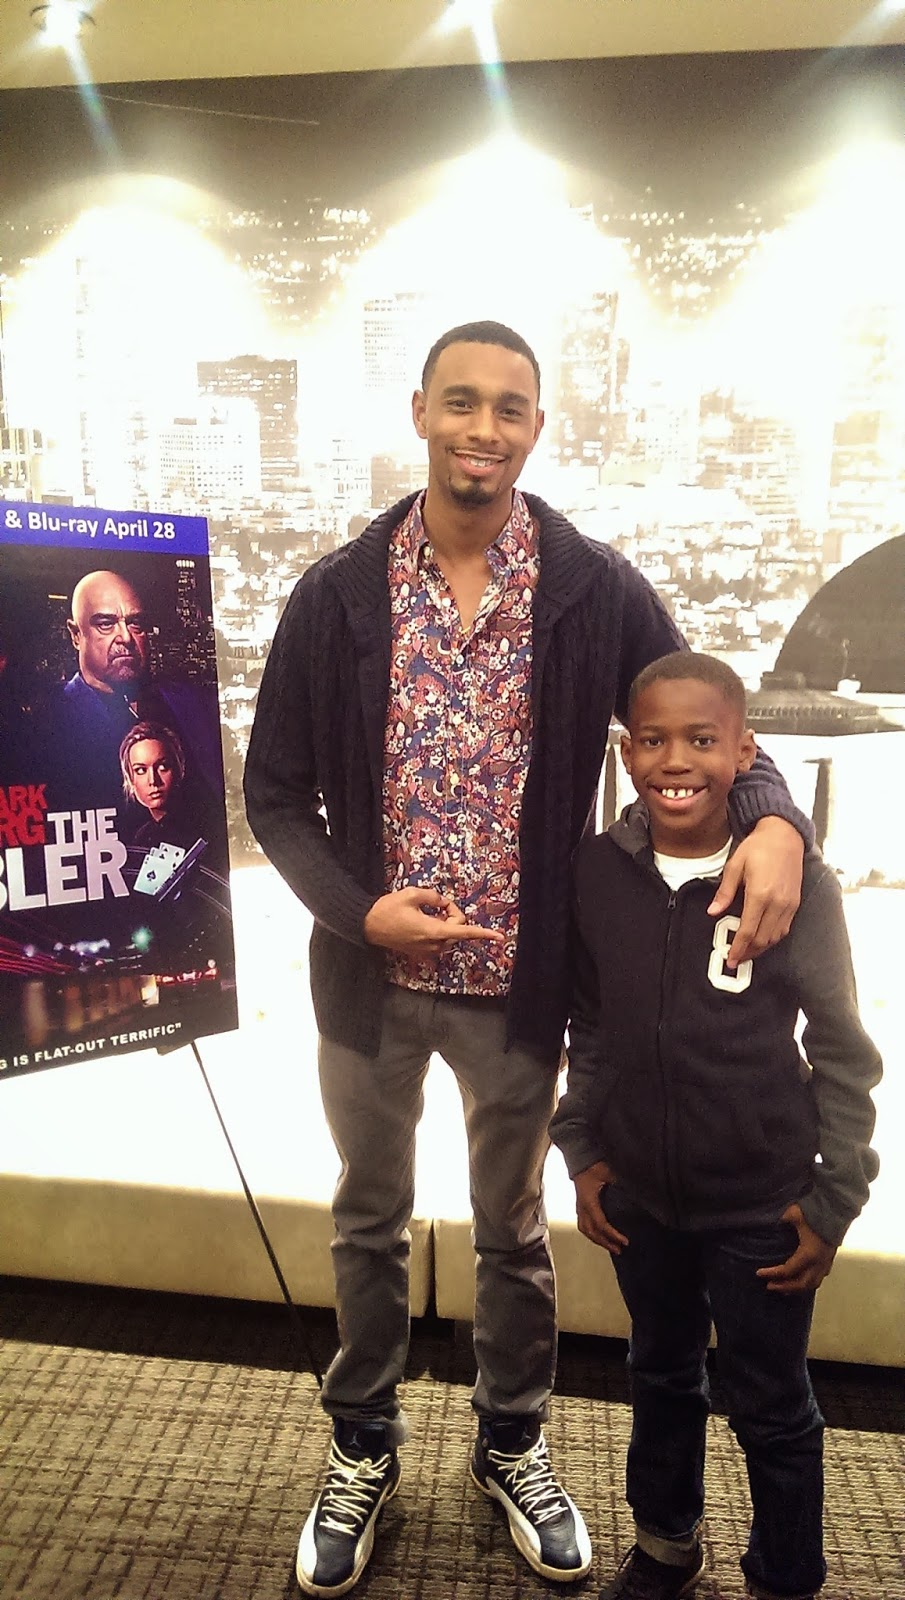 Anthony%2BKelley Hang Time With Anthony Kelley of The Gambler -  The Gambler on DVD  and Blu Ray April 28th